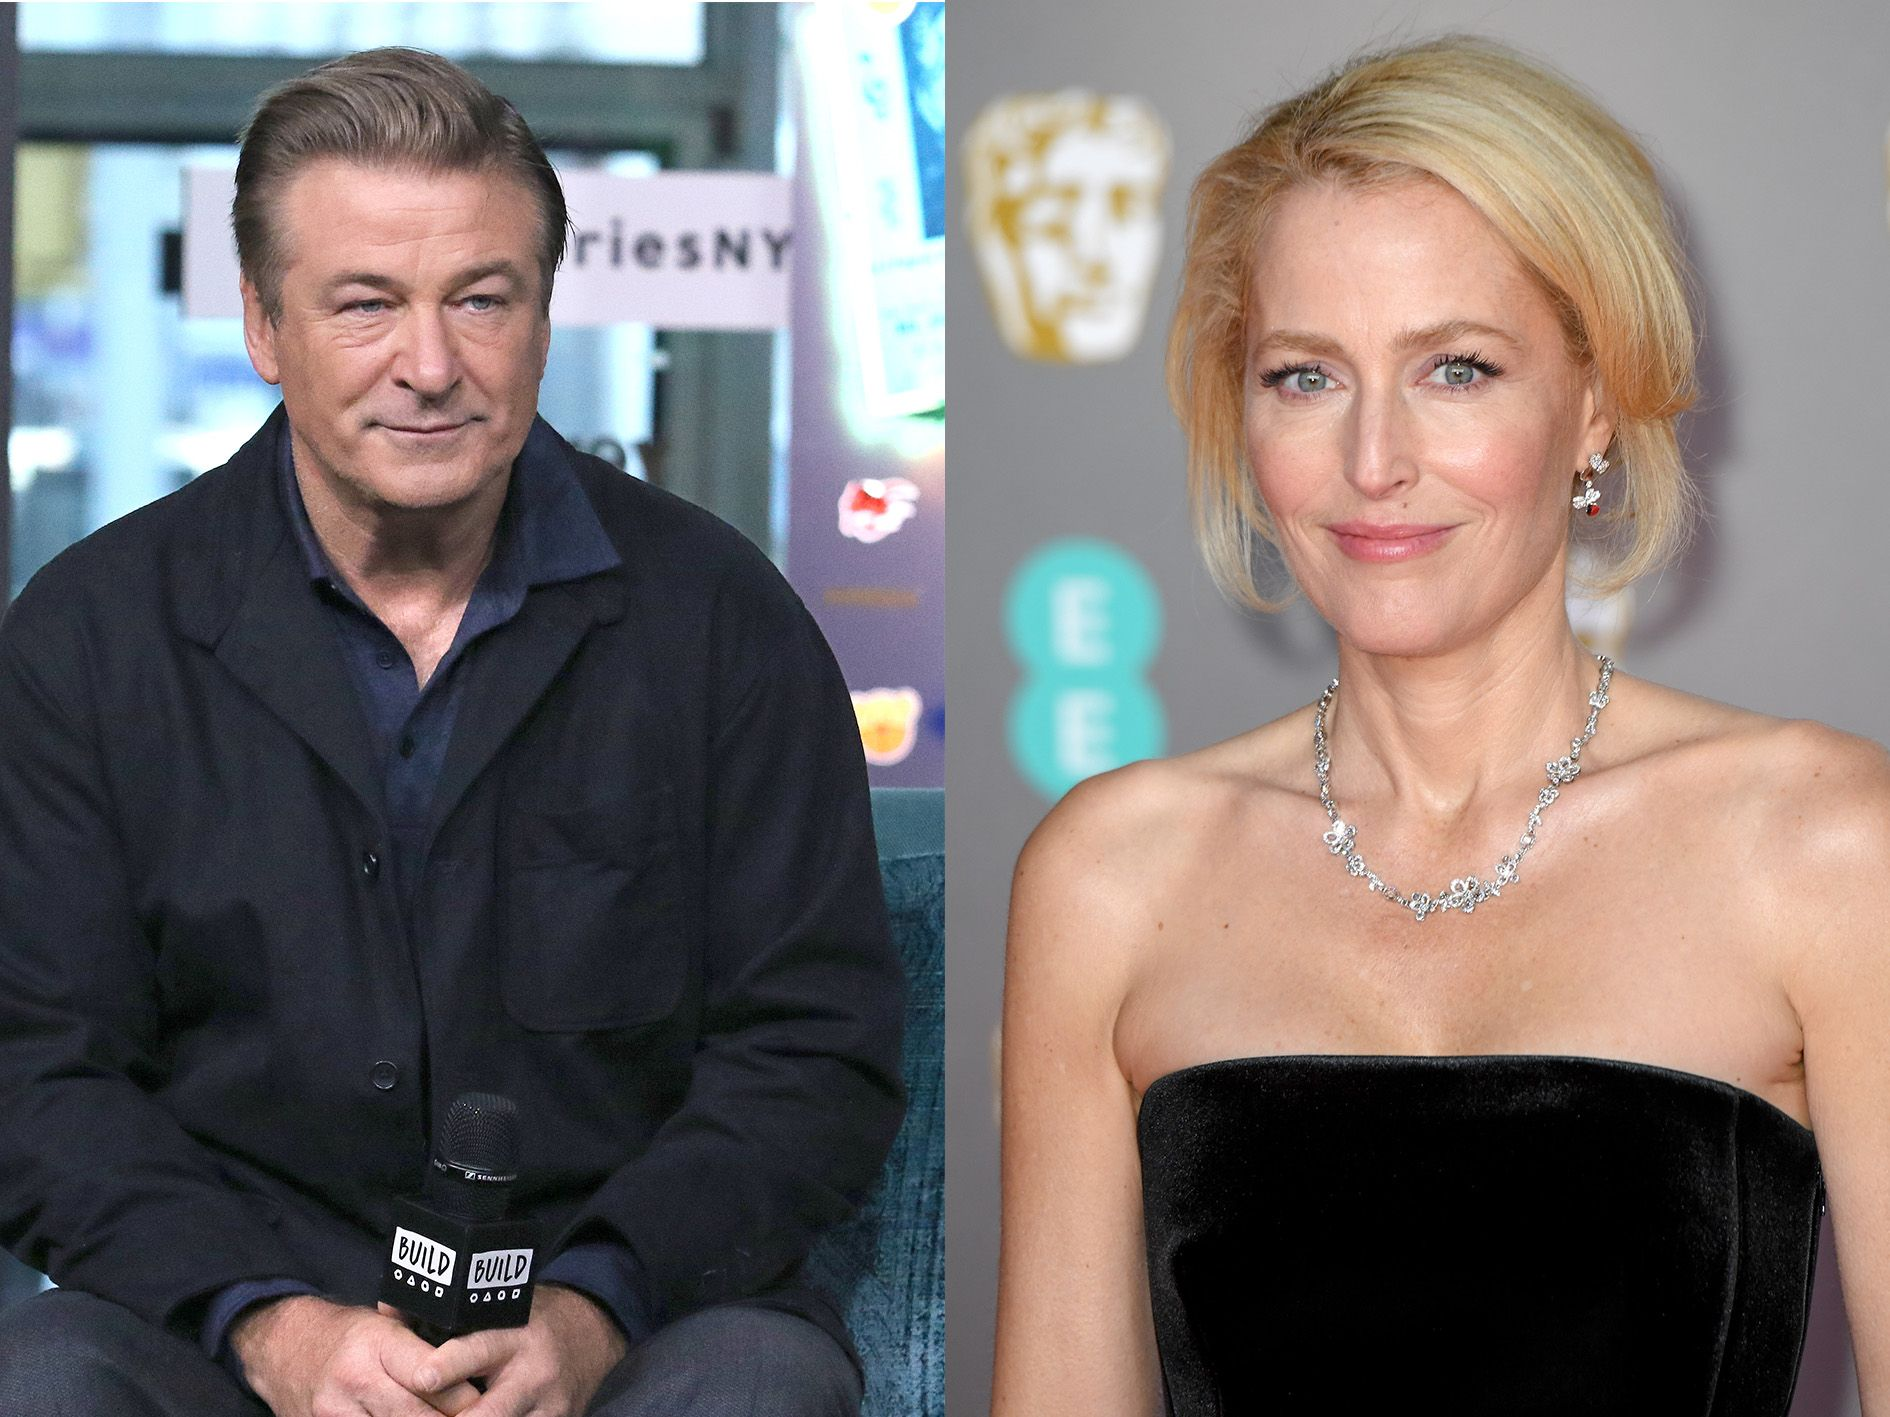 Alec Baldwin deletes Twitter after Gillian Anderson accent comment